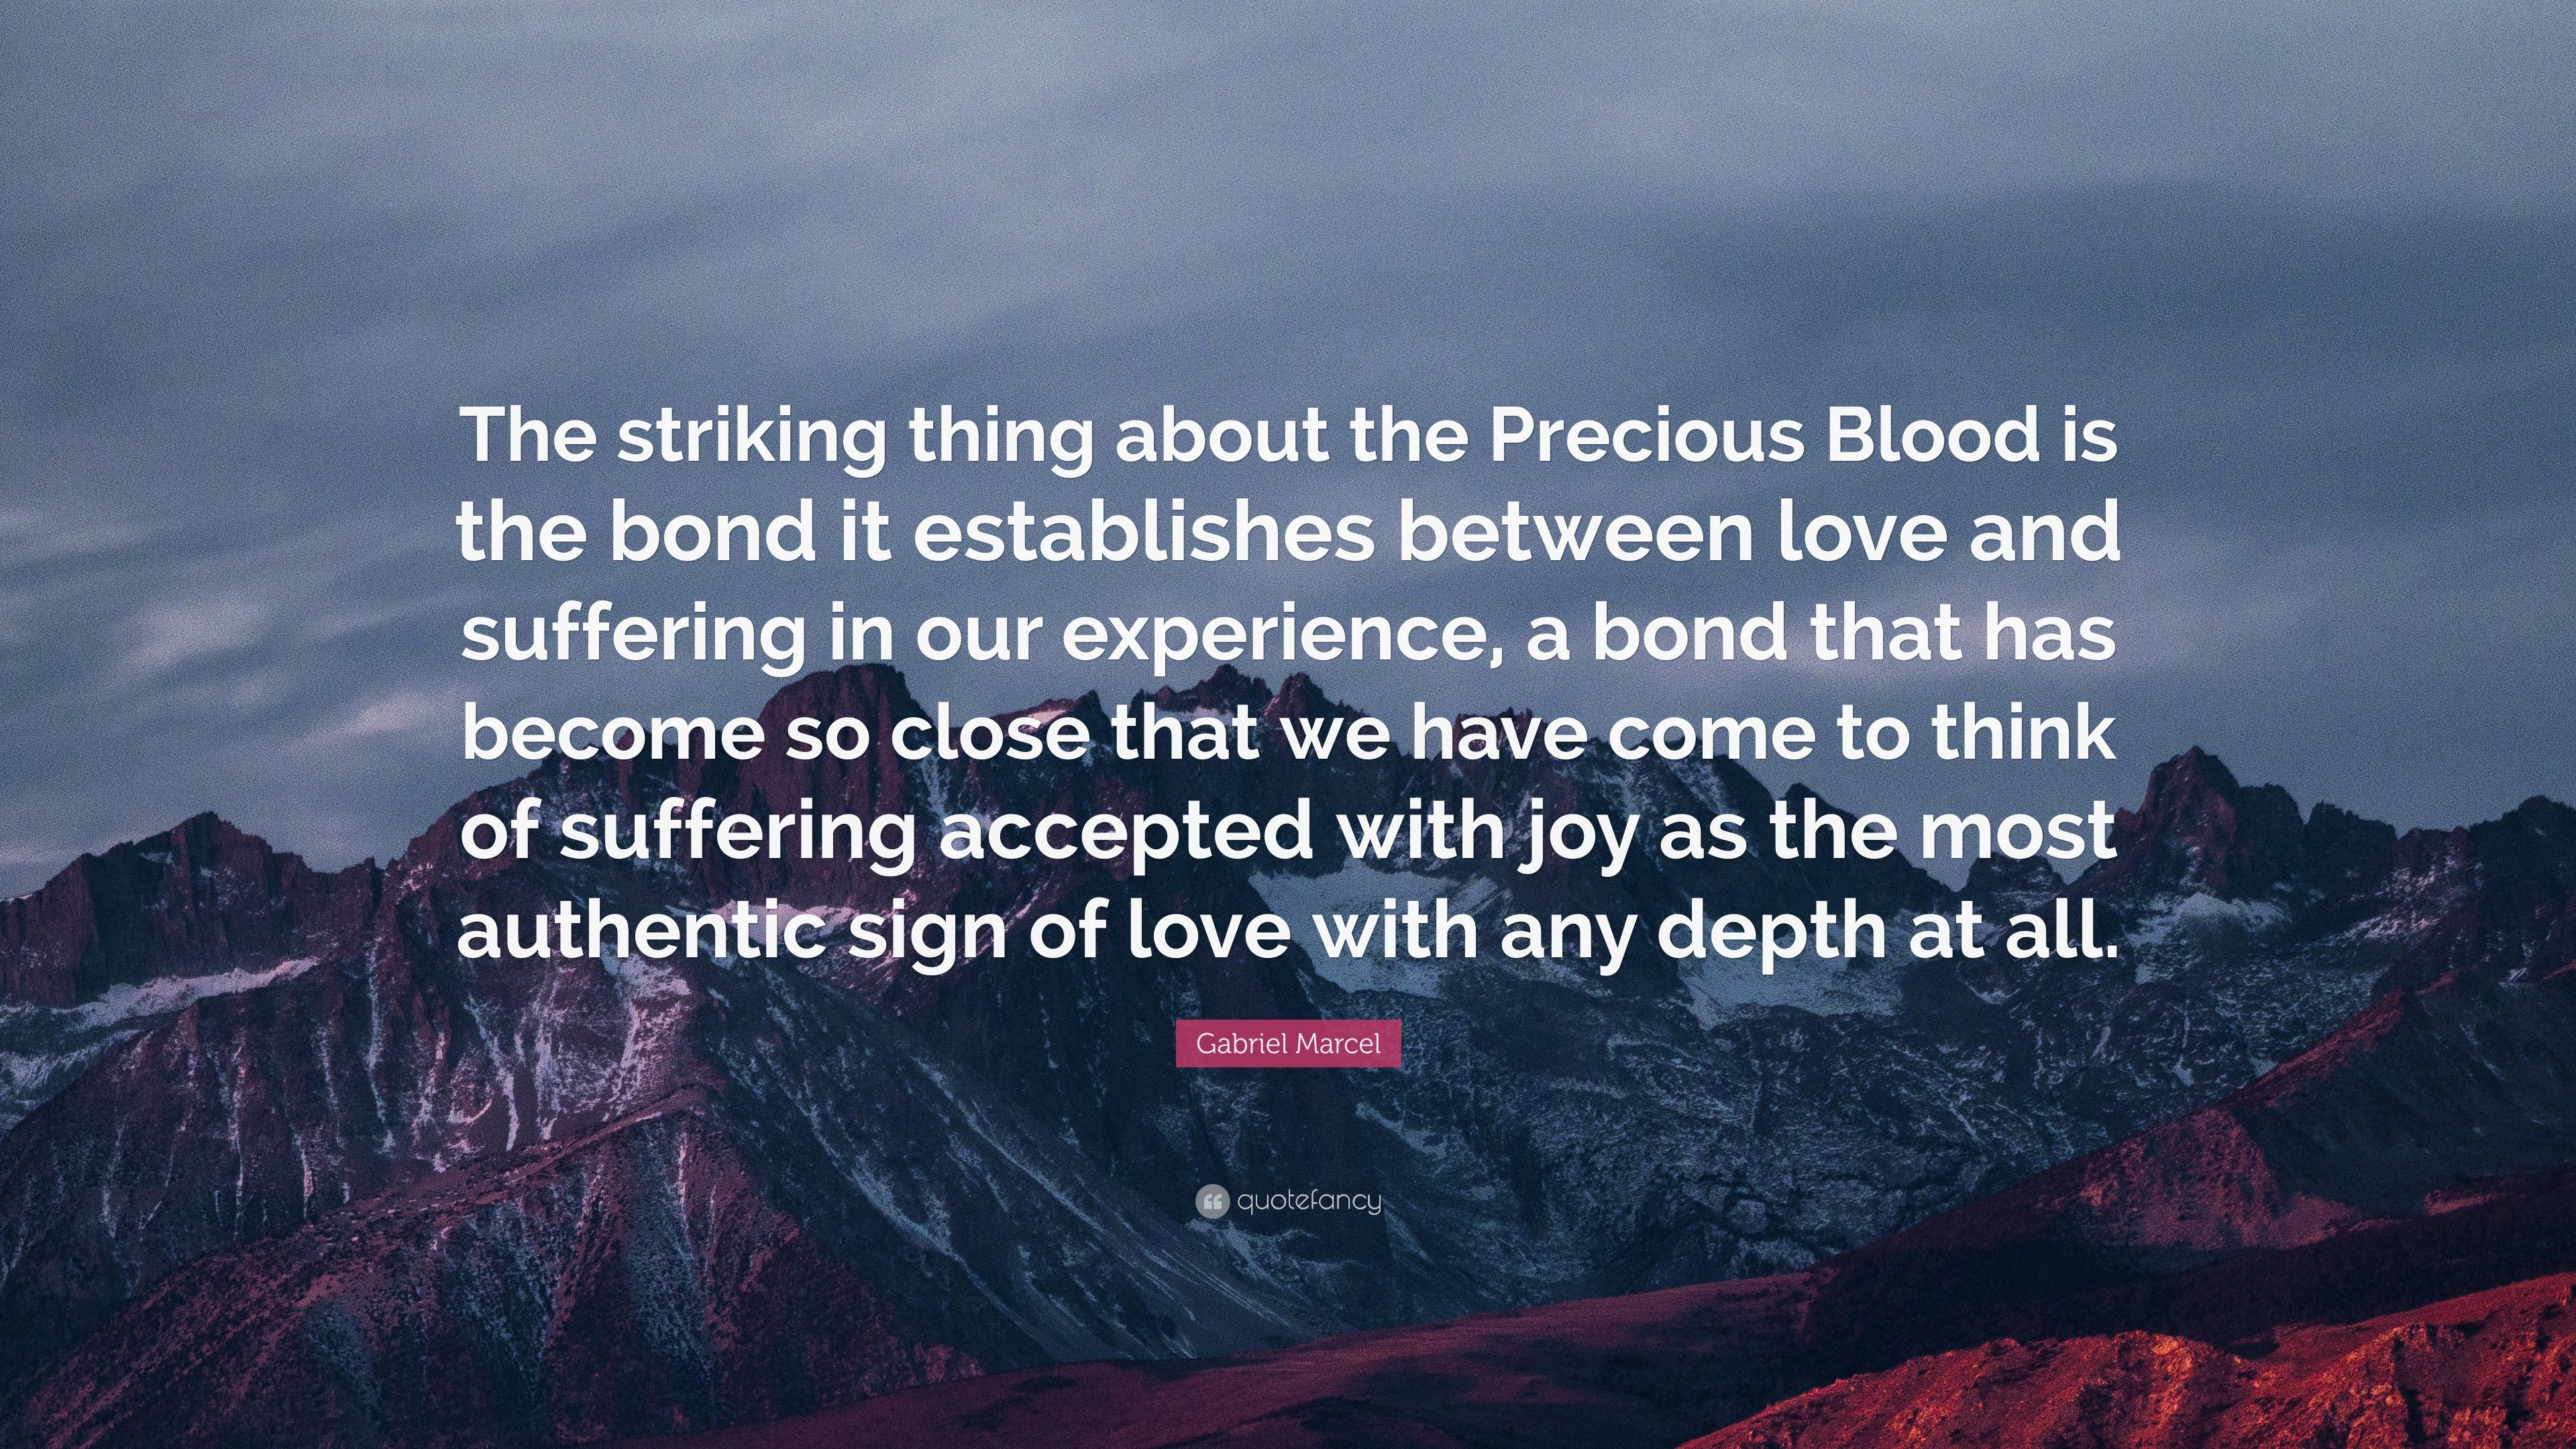 Gabriel Marcel Quote: U201cThe Striking Thing About The Precious Blood Is The  Bond It